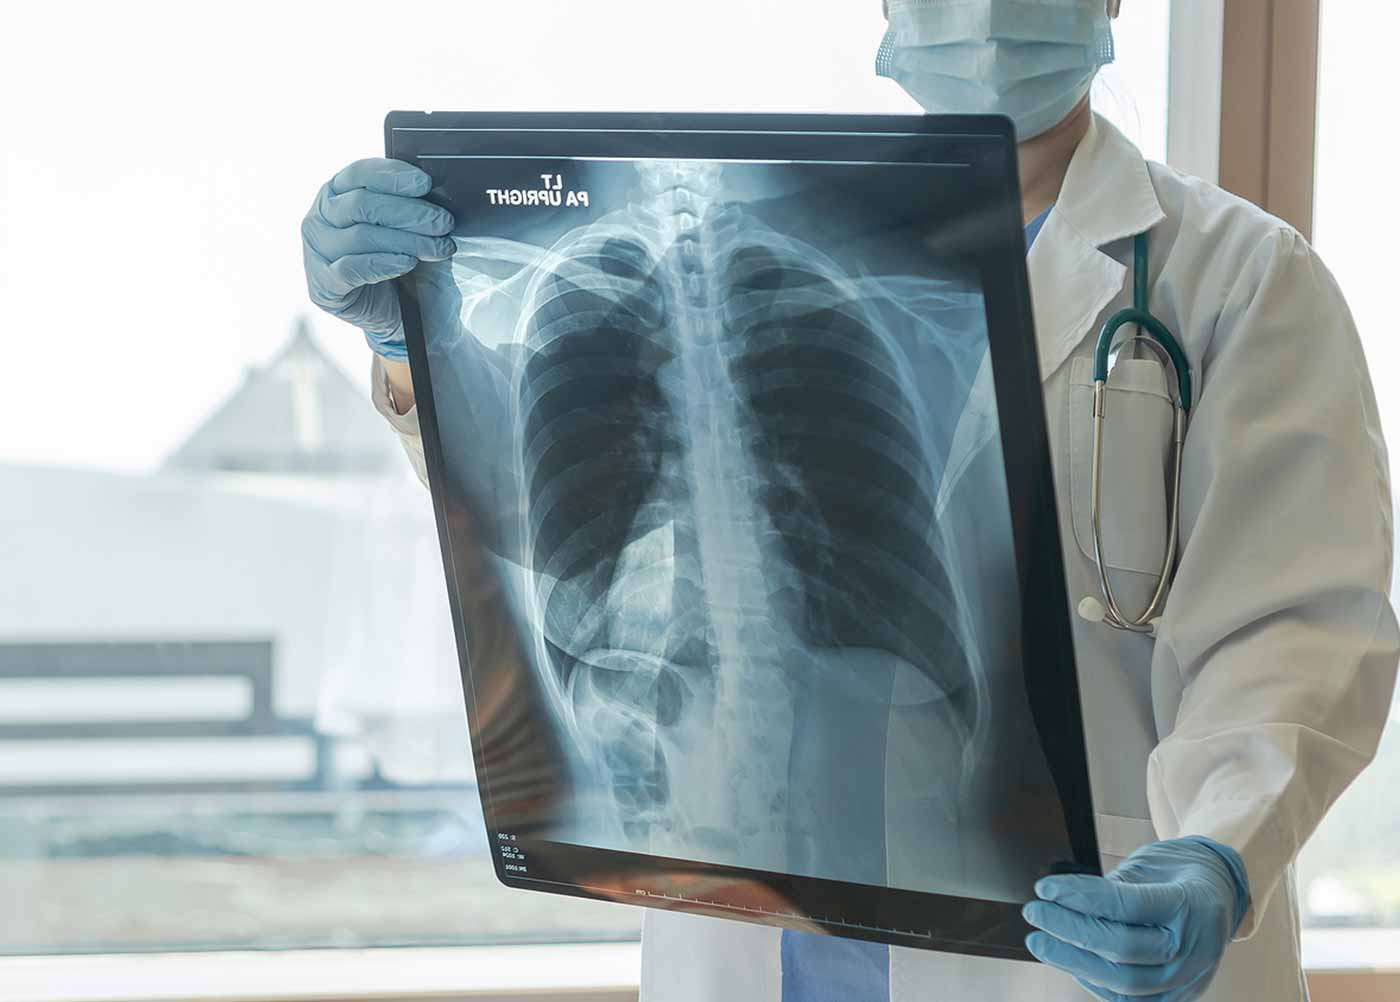 TNM Staging System for Mesothelioma